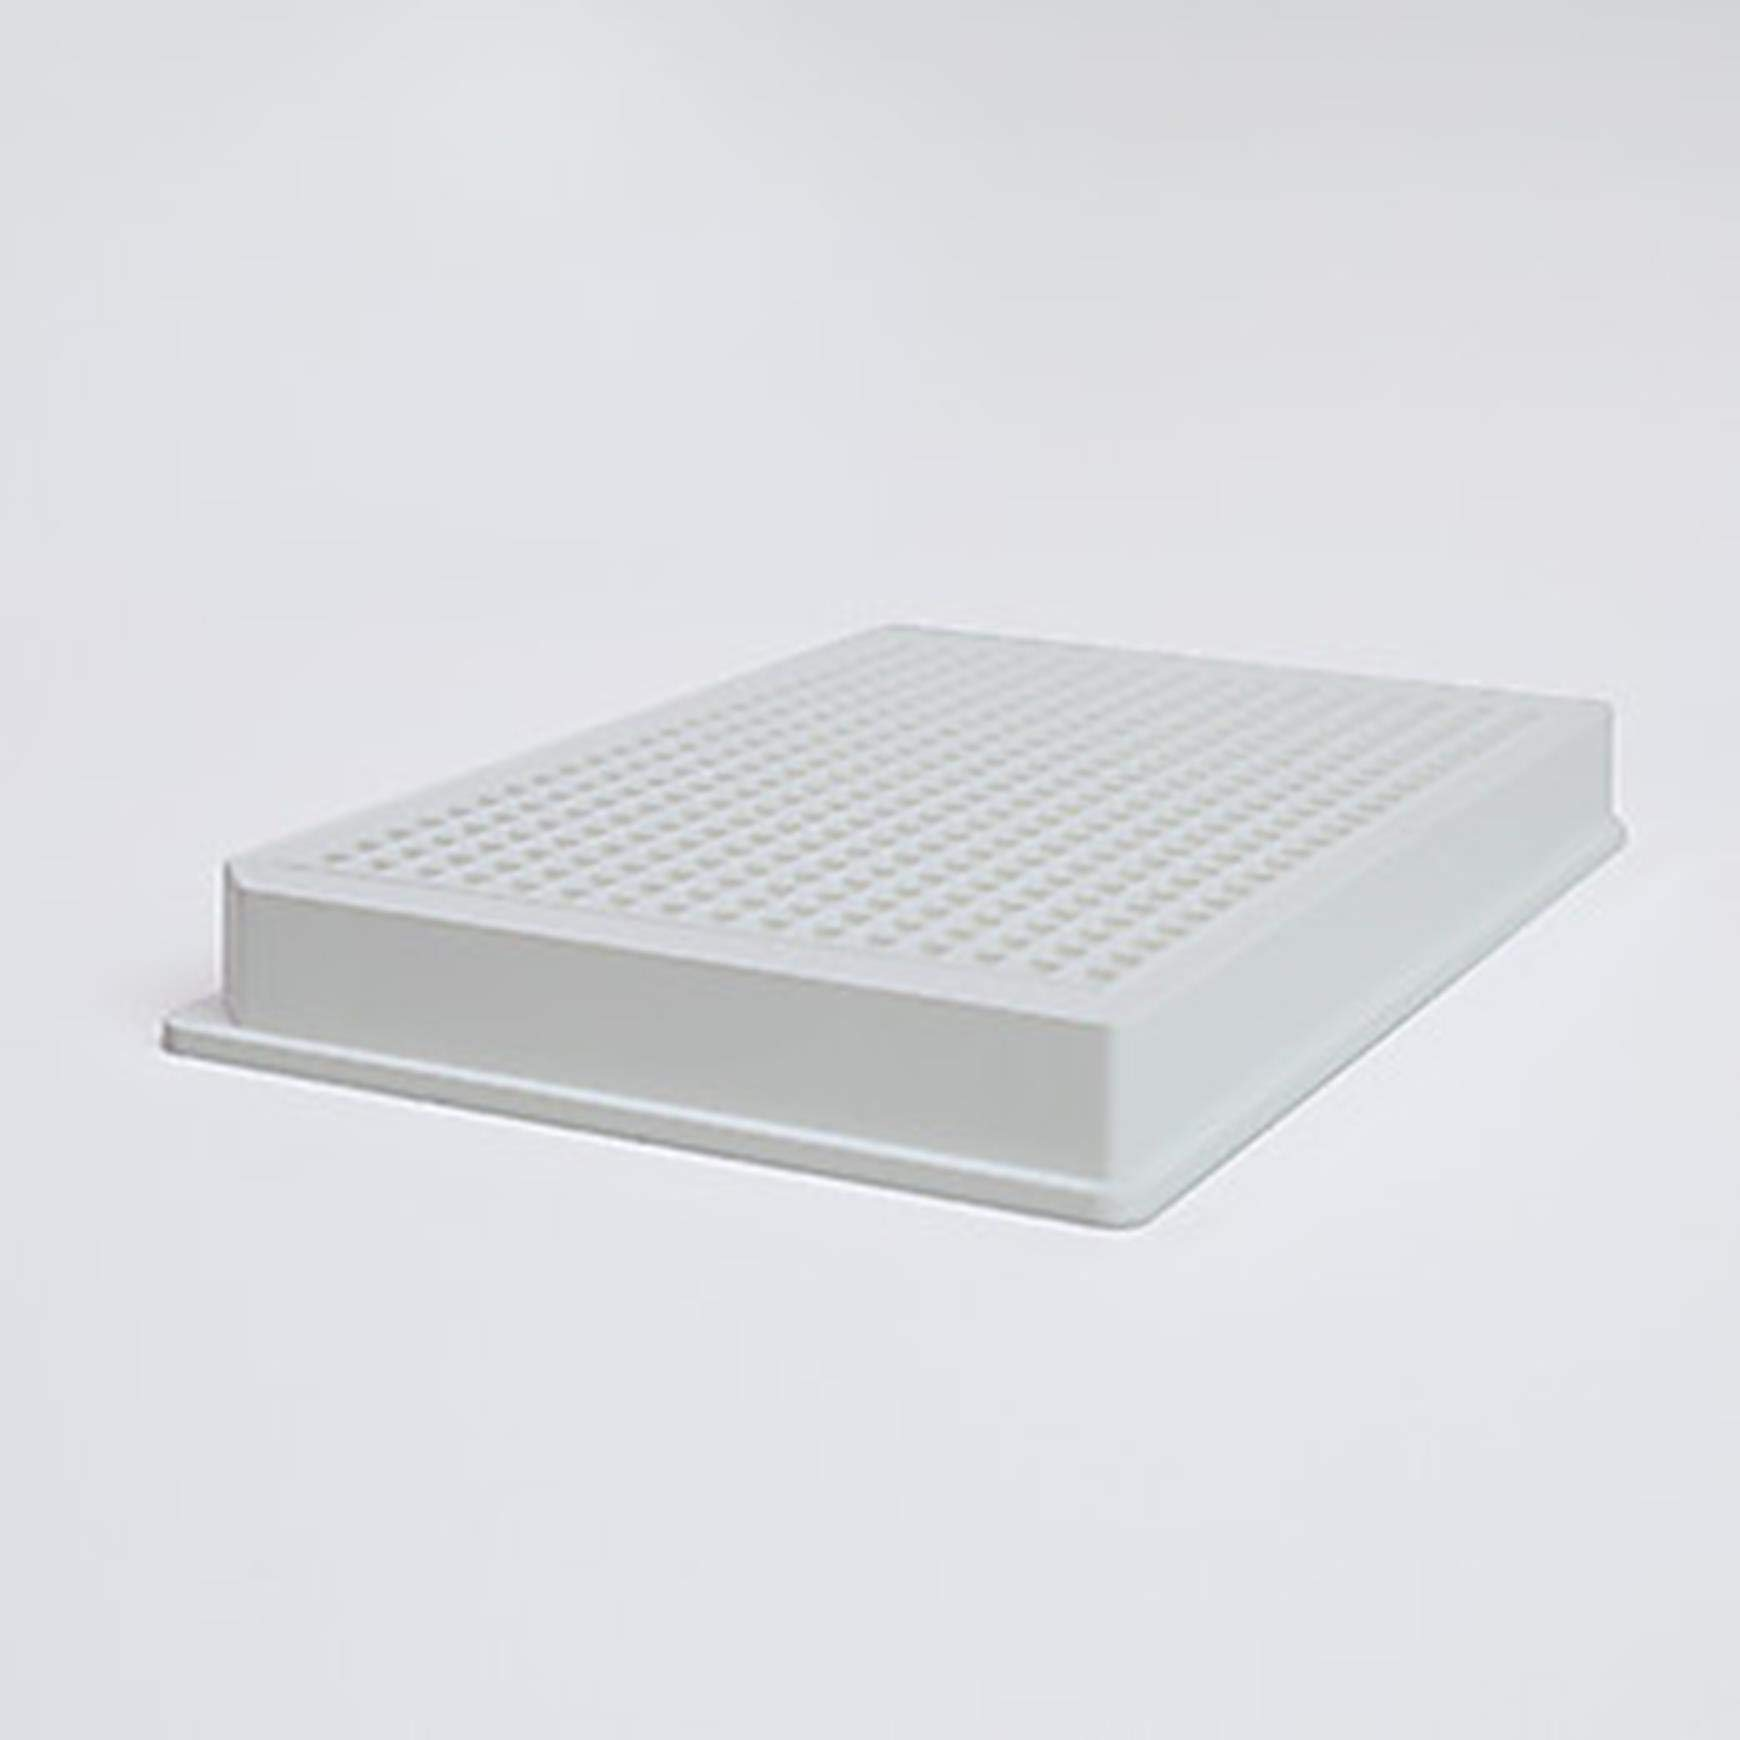 Corning 3765 384 Well Flat Clear Bottom White Polystyrene TC-Treated Microplate with Lid, Sterile (Pack of 100) by Corning